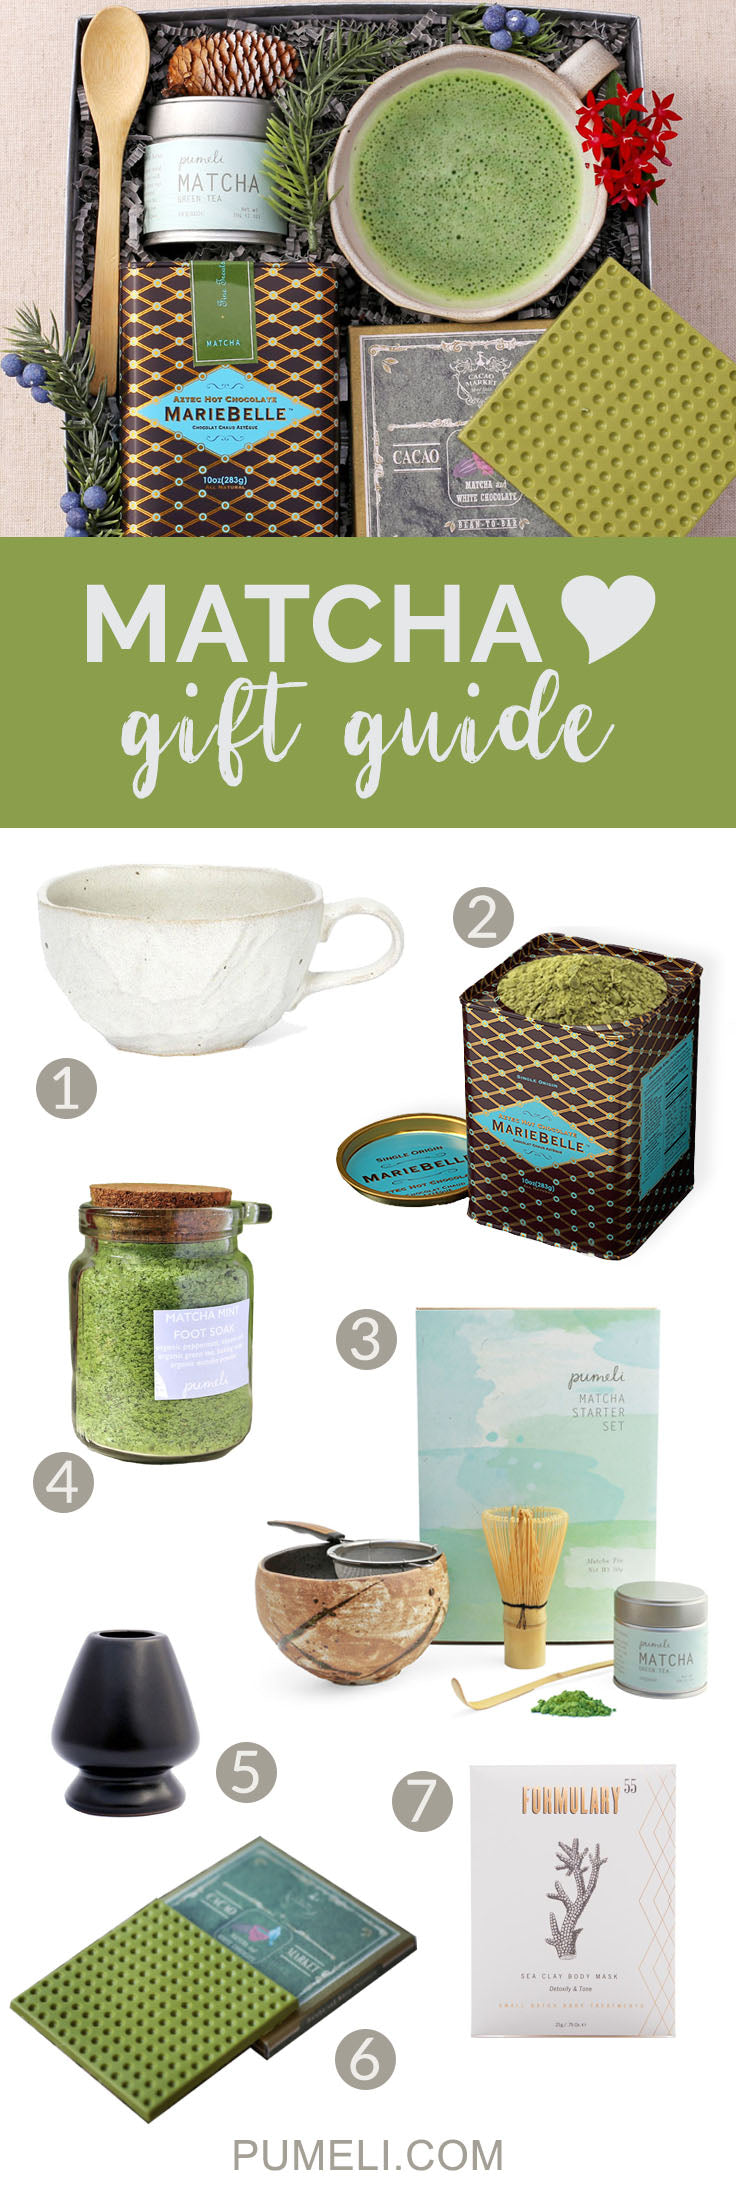 Matcha Lover's Gift Guide